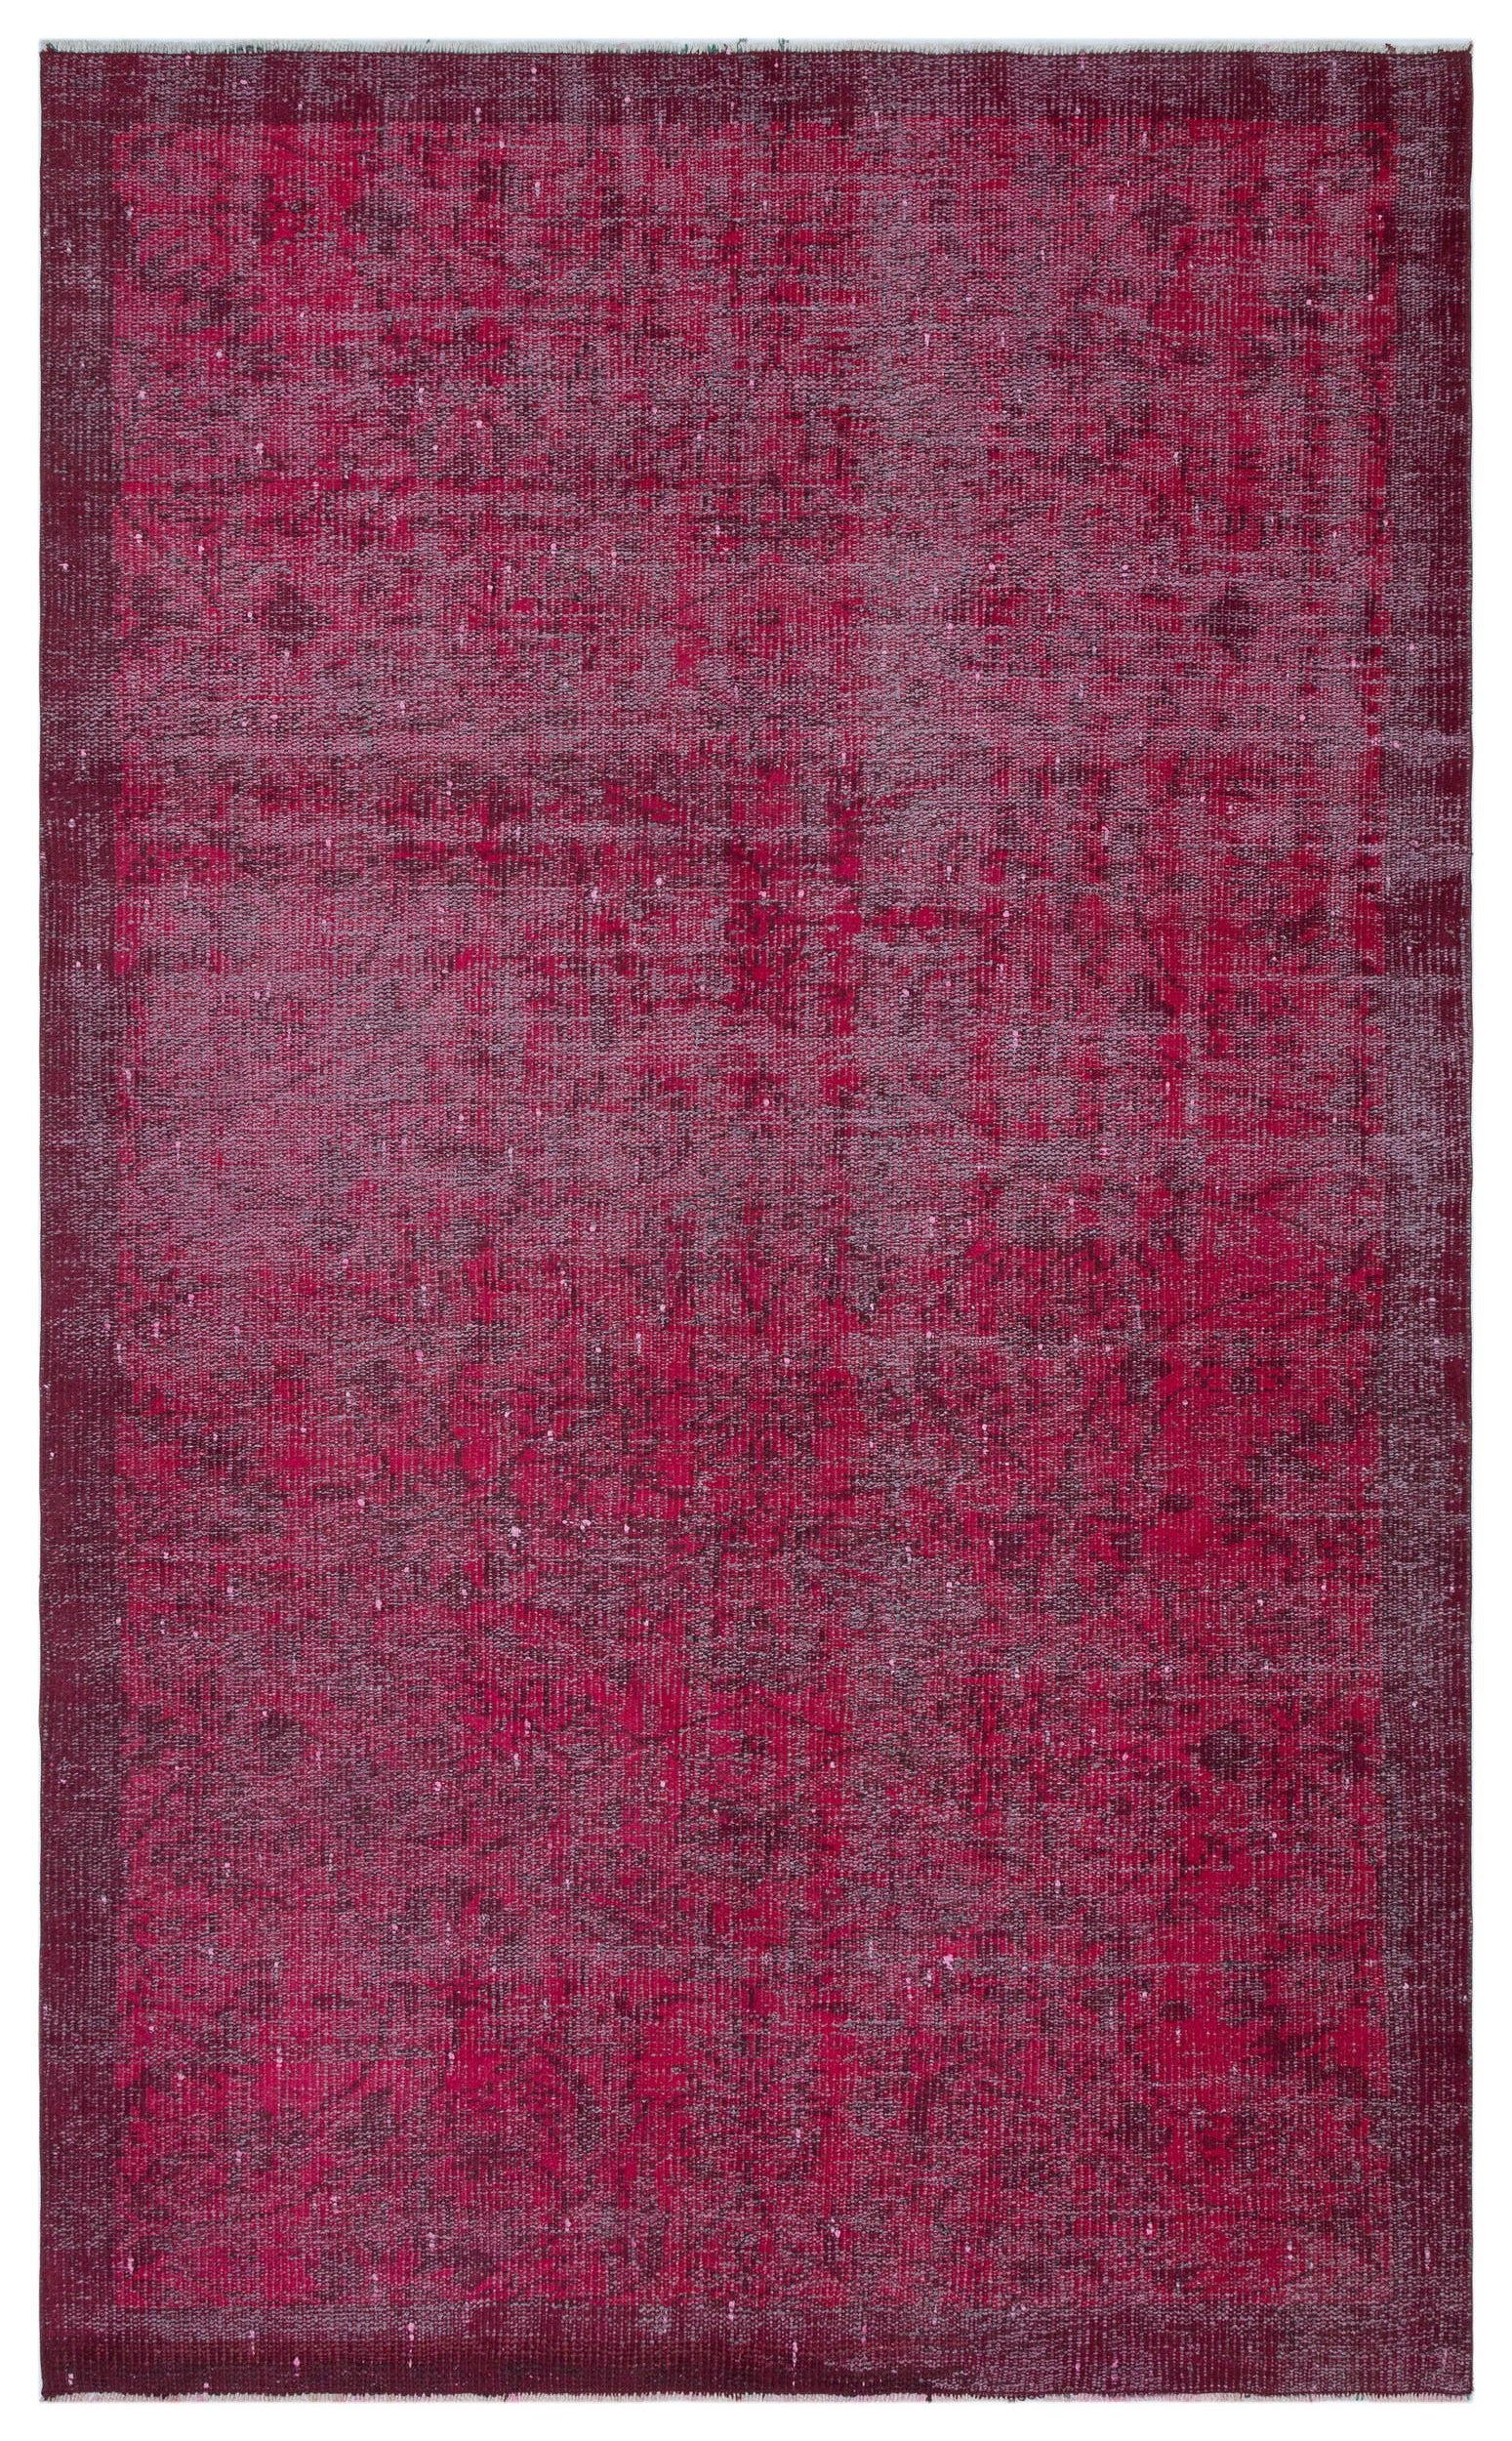 Fuchsia Over Dyed Vintage Rug 4'10'' x 7'9'' ft 148 x 237 cm